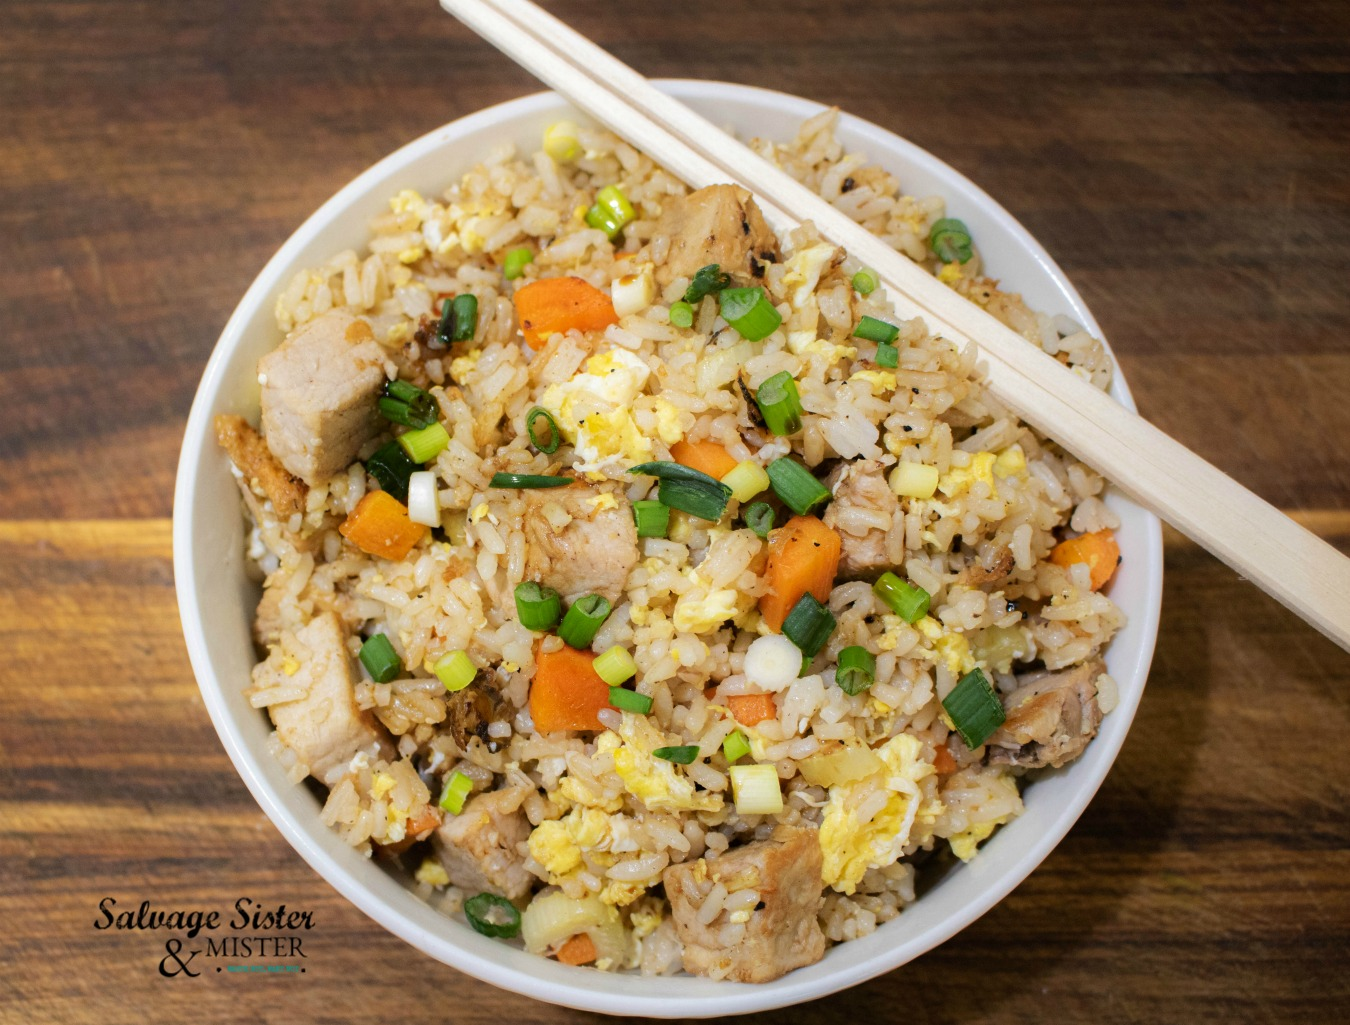 Pork fried rice using last nights leftovers. This is a perfect way to use up leftover rice. Find recipe on salvagesisterandmister.com